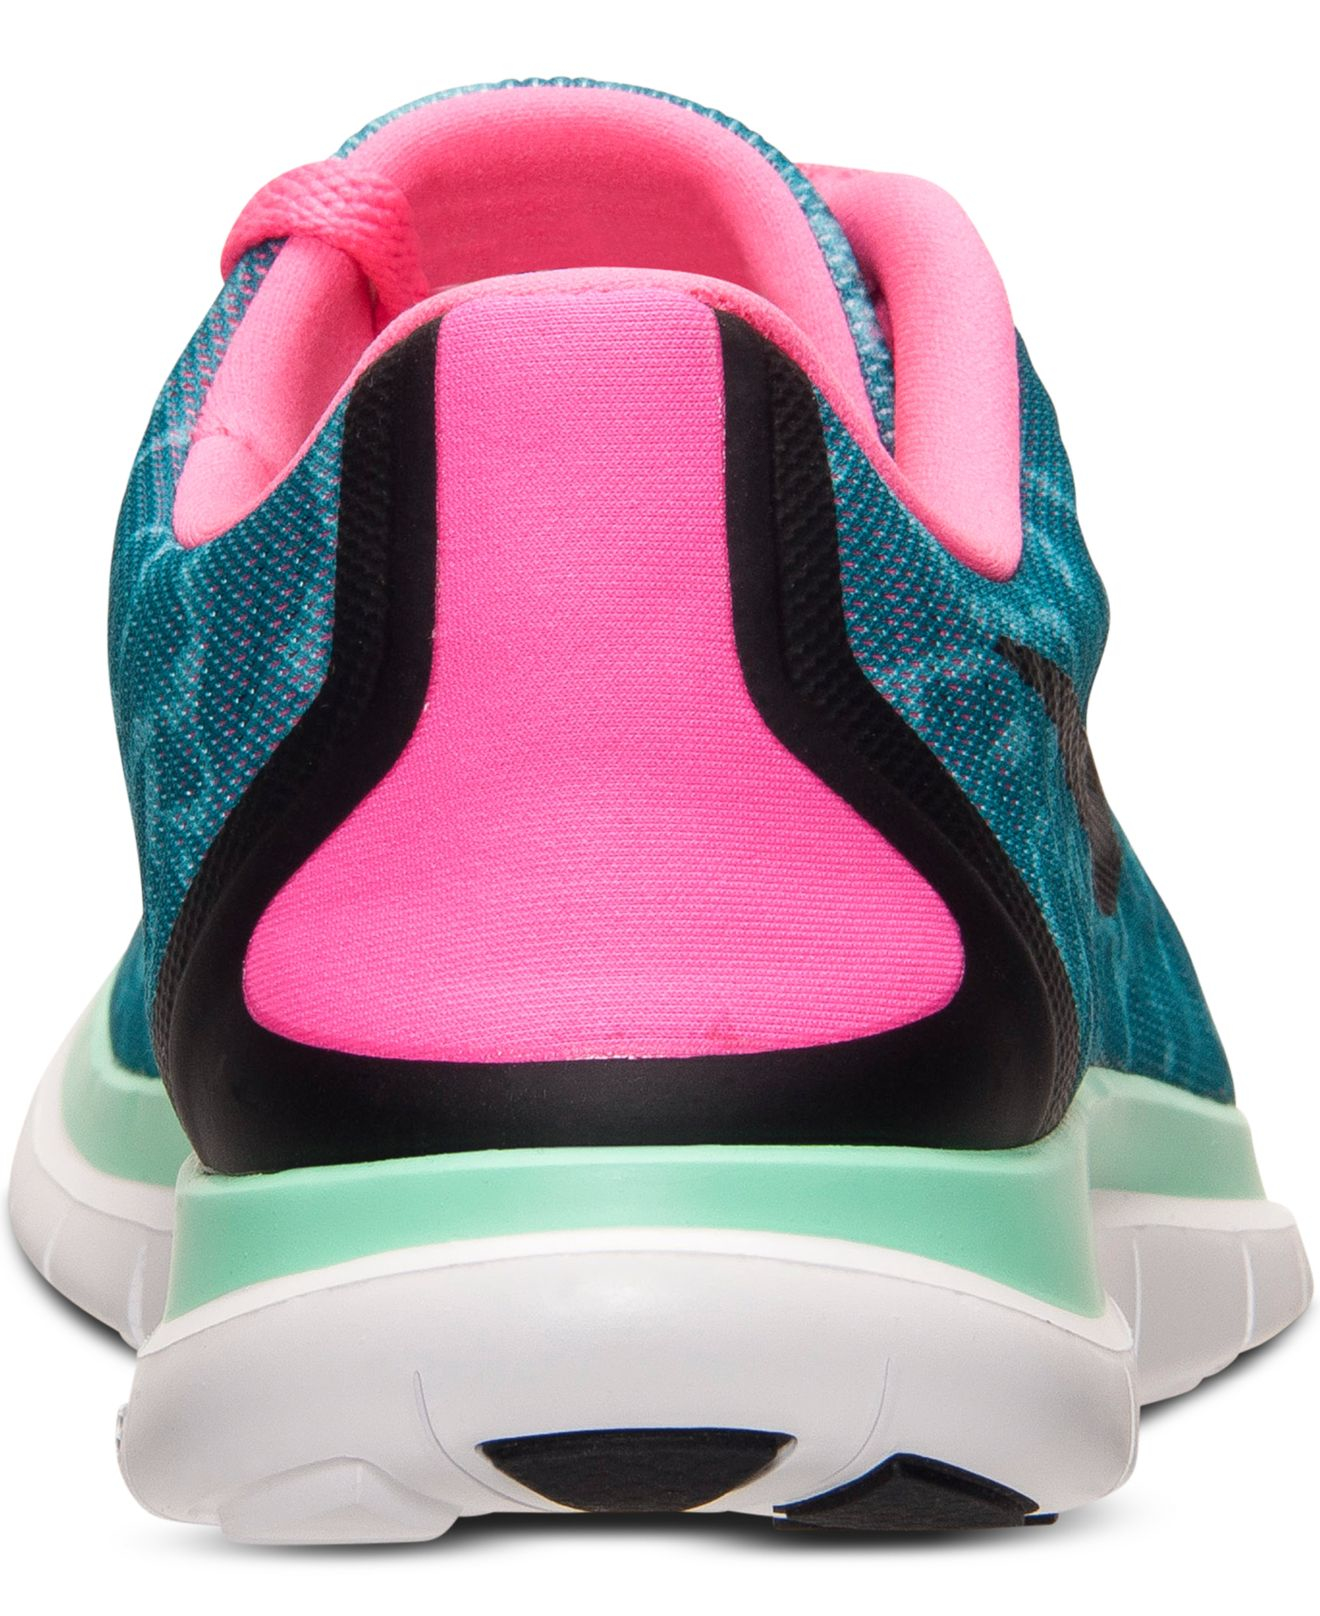 6c90cff955c6f ... Lyst - Nike Women s Free 4.0 V5 Print Running Sneakers From Finish .